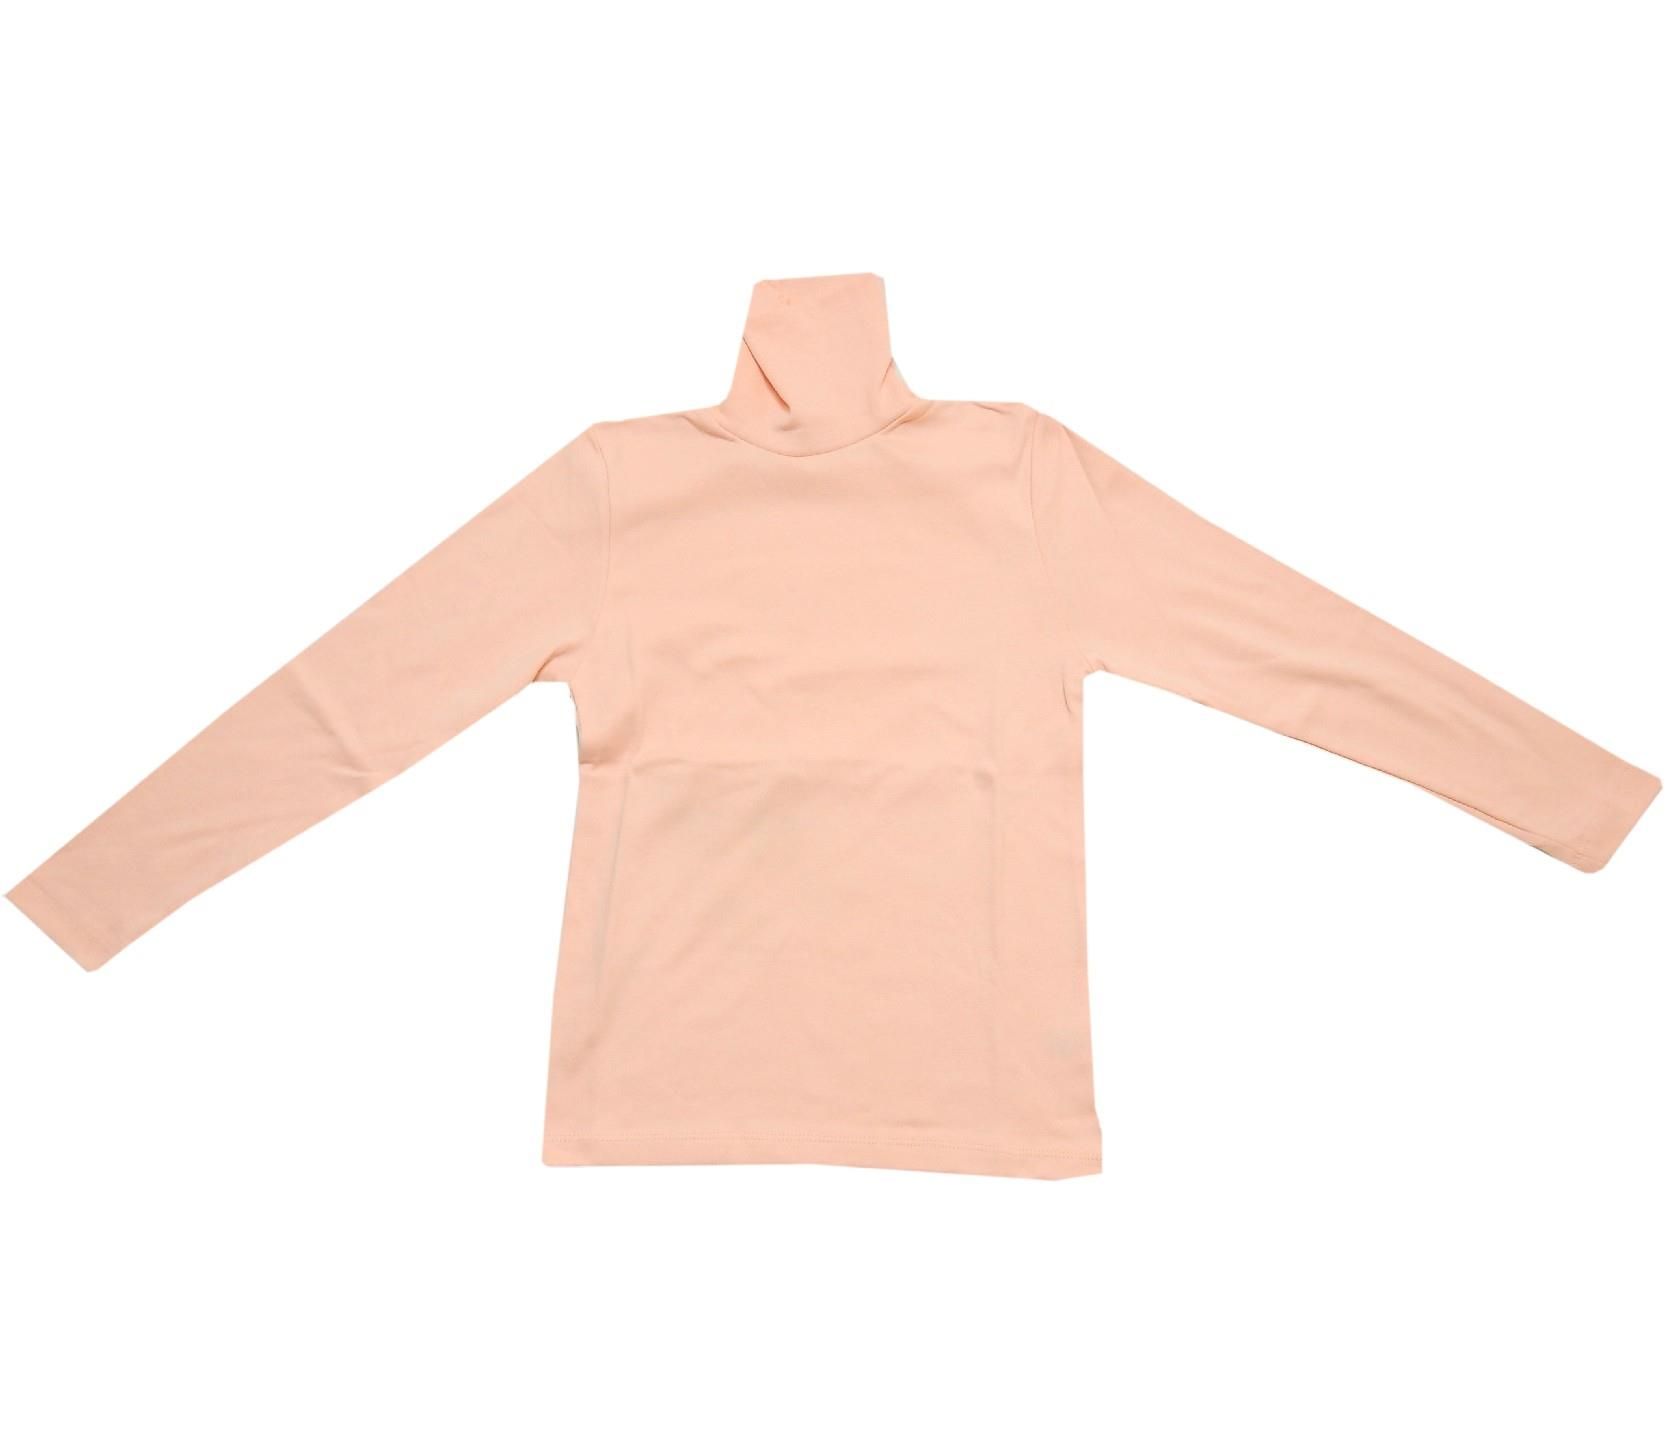 117 wholesale turtleneck sweater for children (9-10-11-12 age)